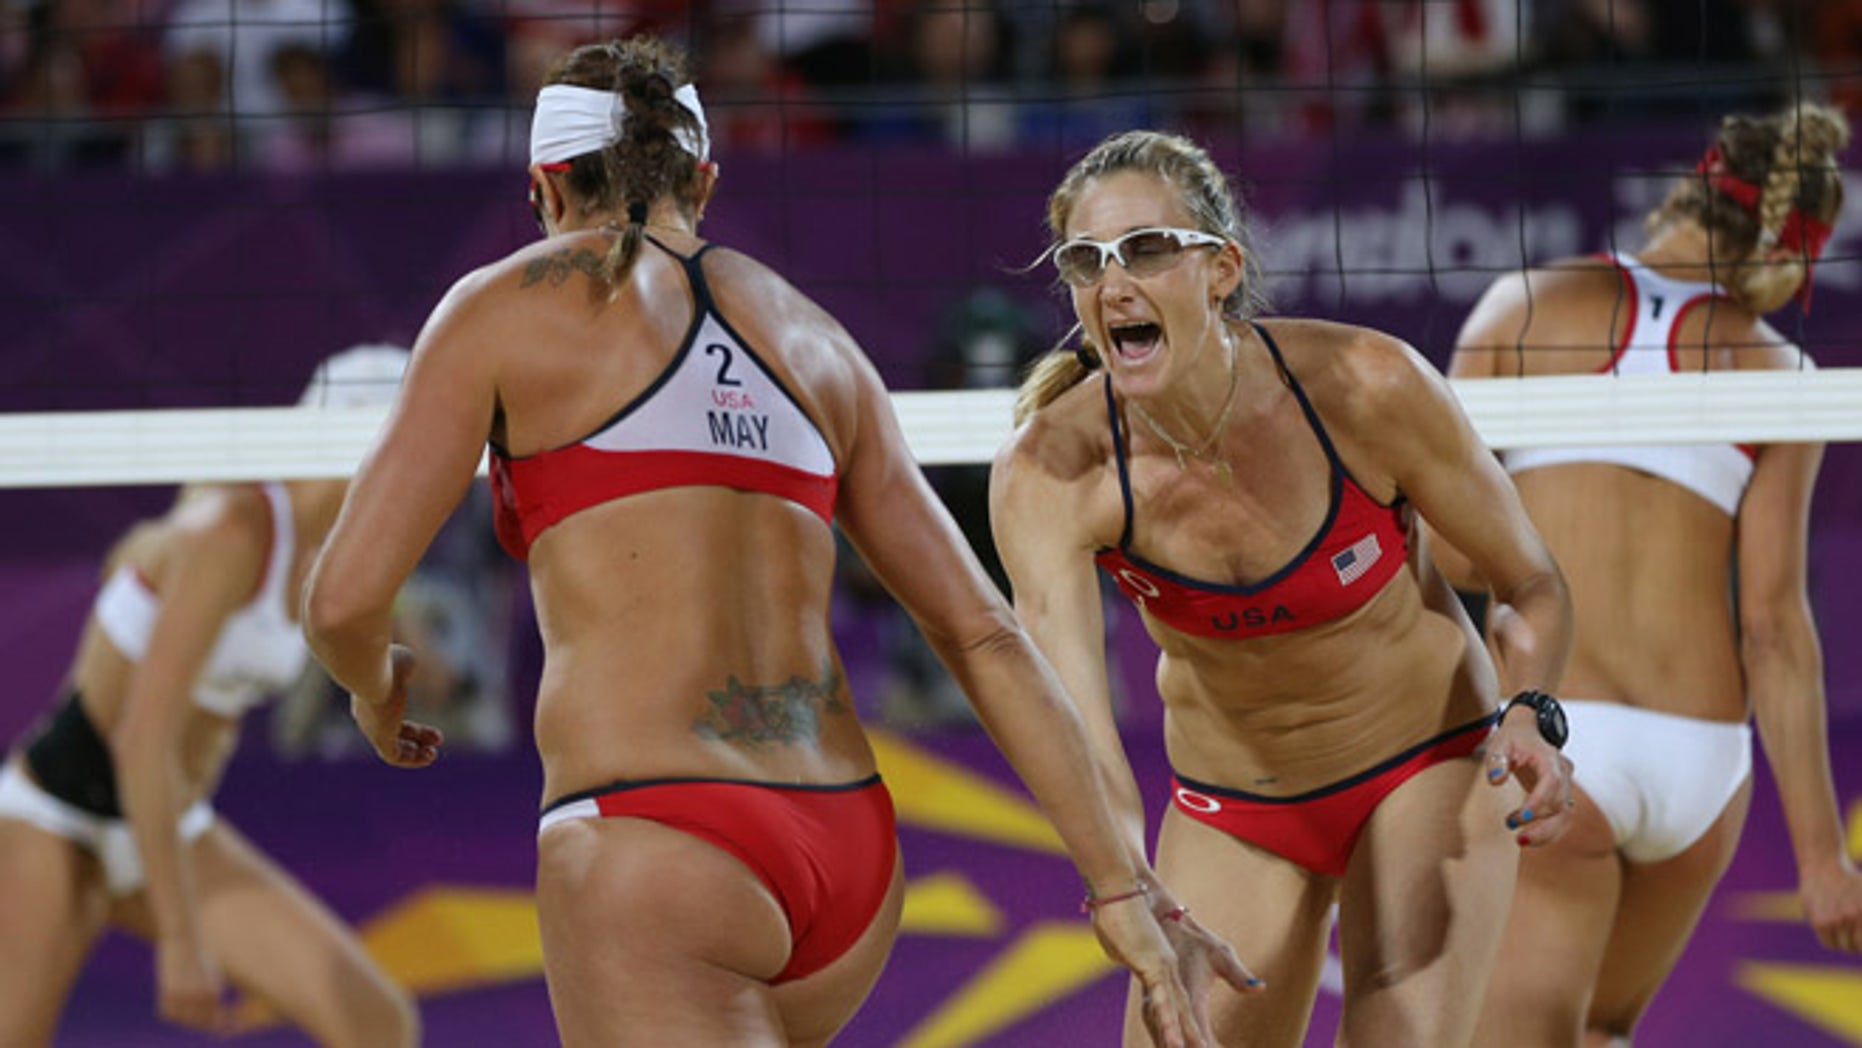 Paparazzi Misty May Treanor nudes (99 photo), Tits, Fappening, Instagram, butt 2006